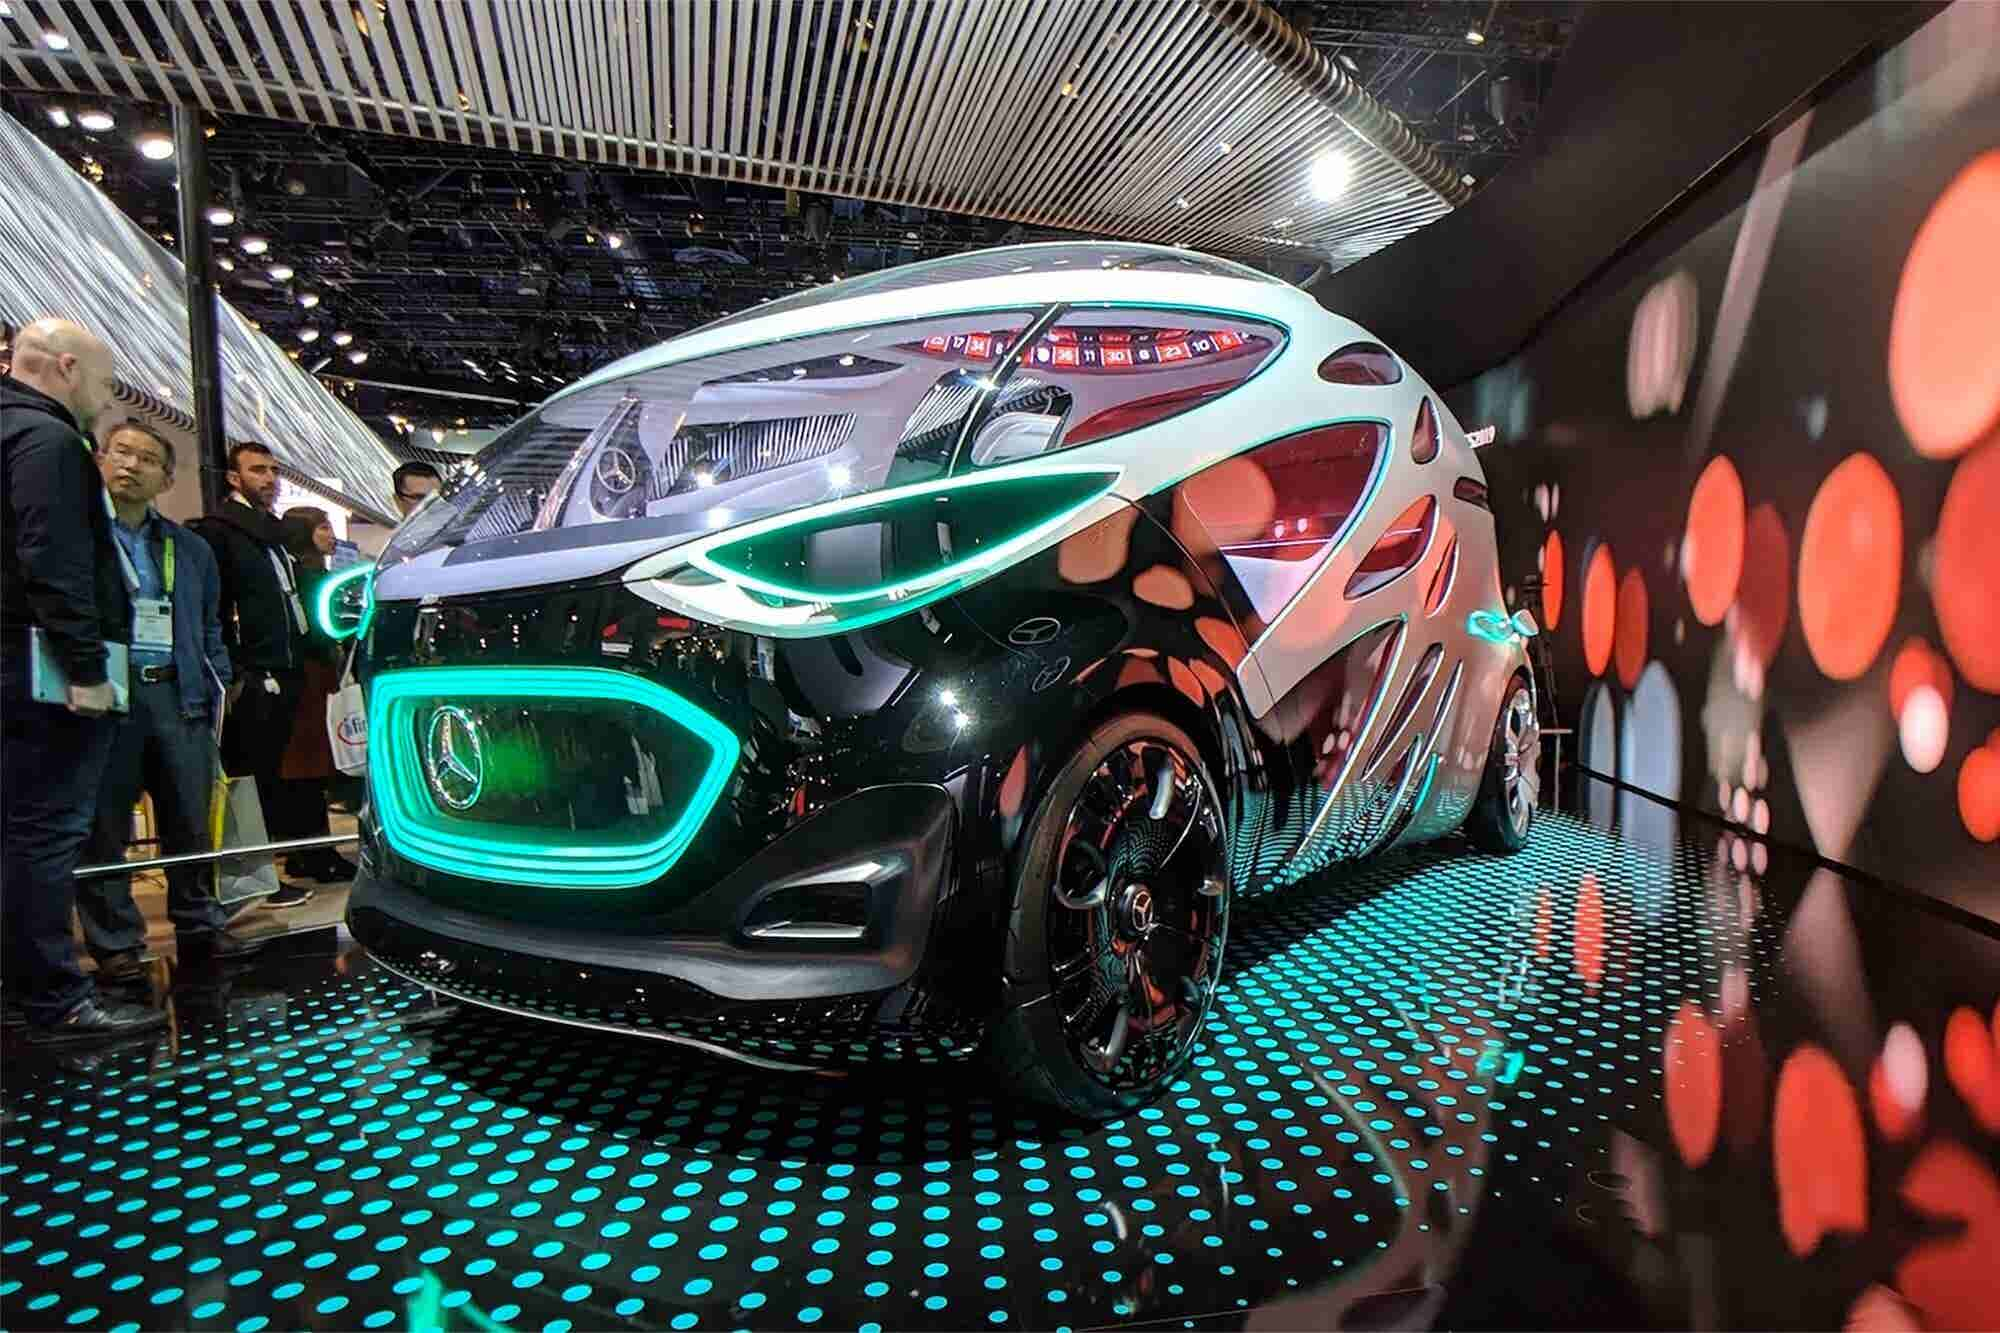 The 15 Craziest Cars and Futuristic Vehicles of CES 2019